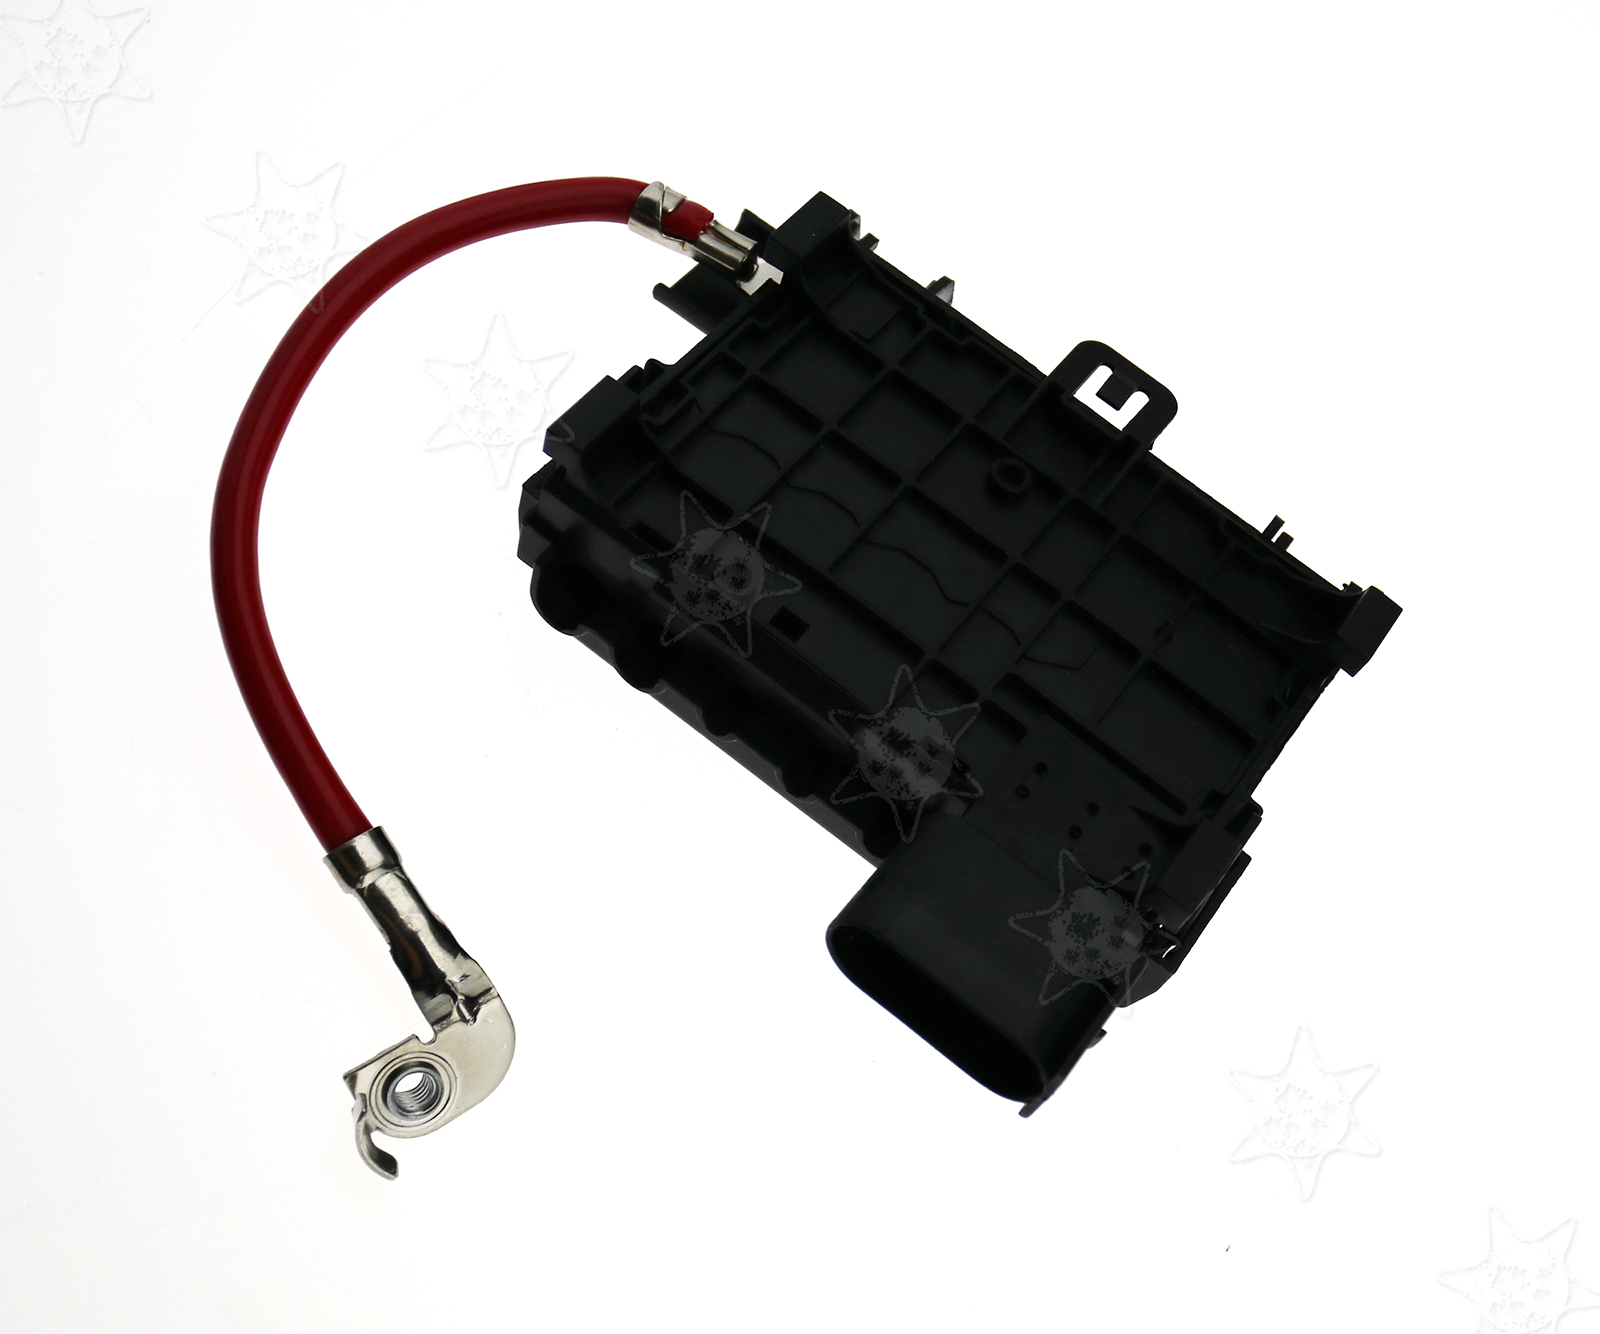 3-Pin Fuse Box Battery Terminal For Volkswagen VW Jetta/ Bora MK4 1J0937550A